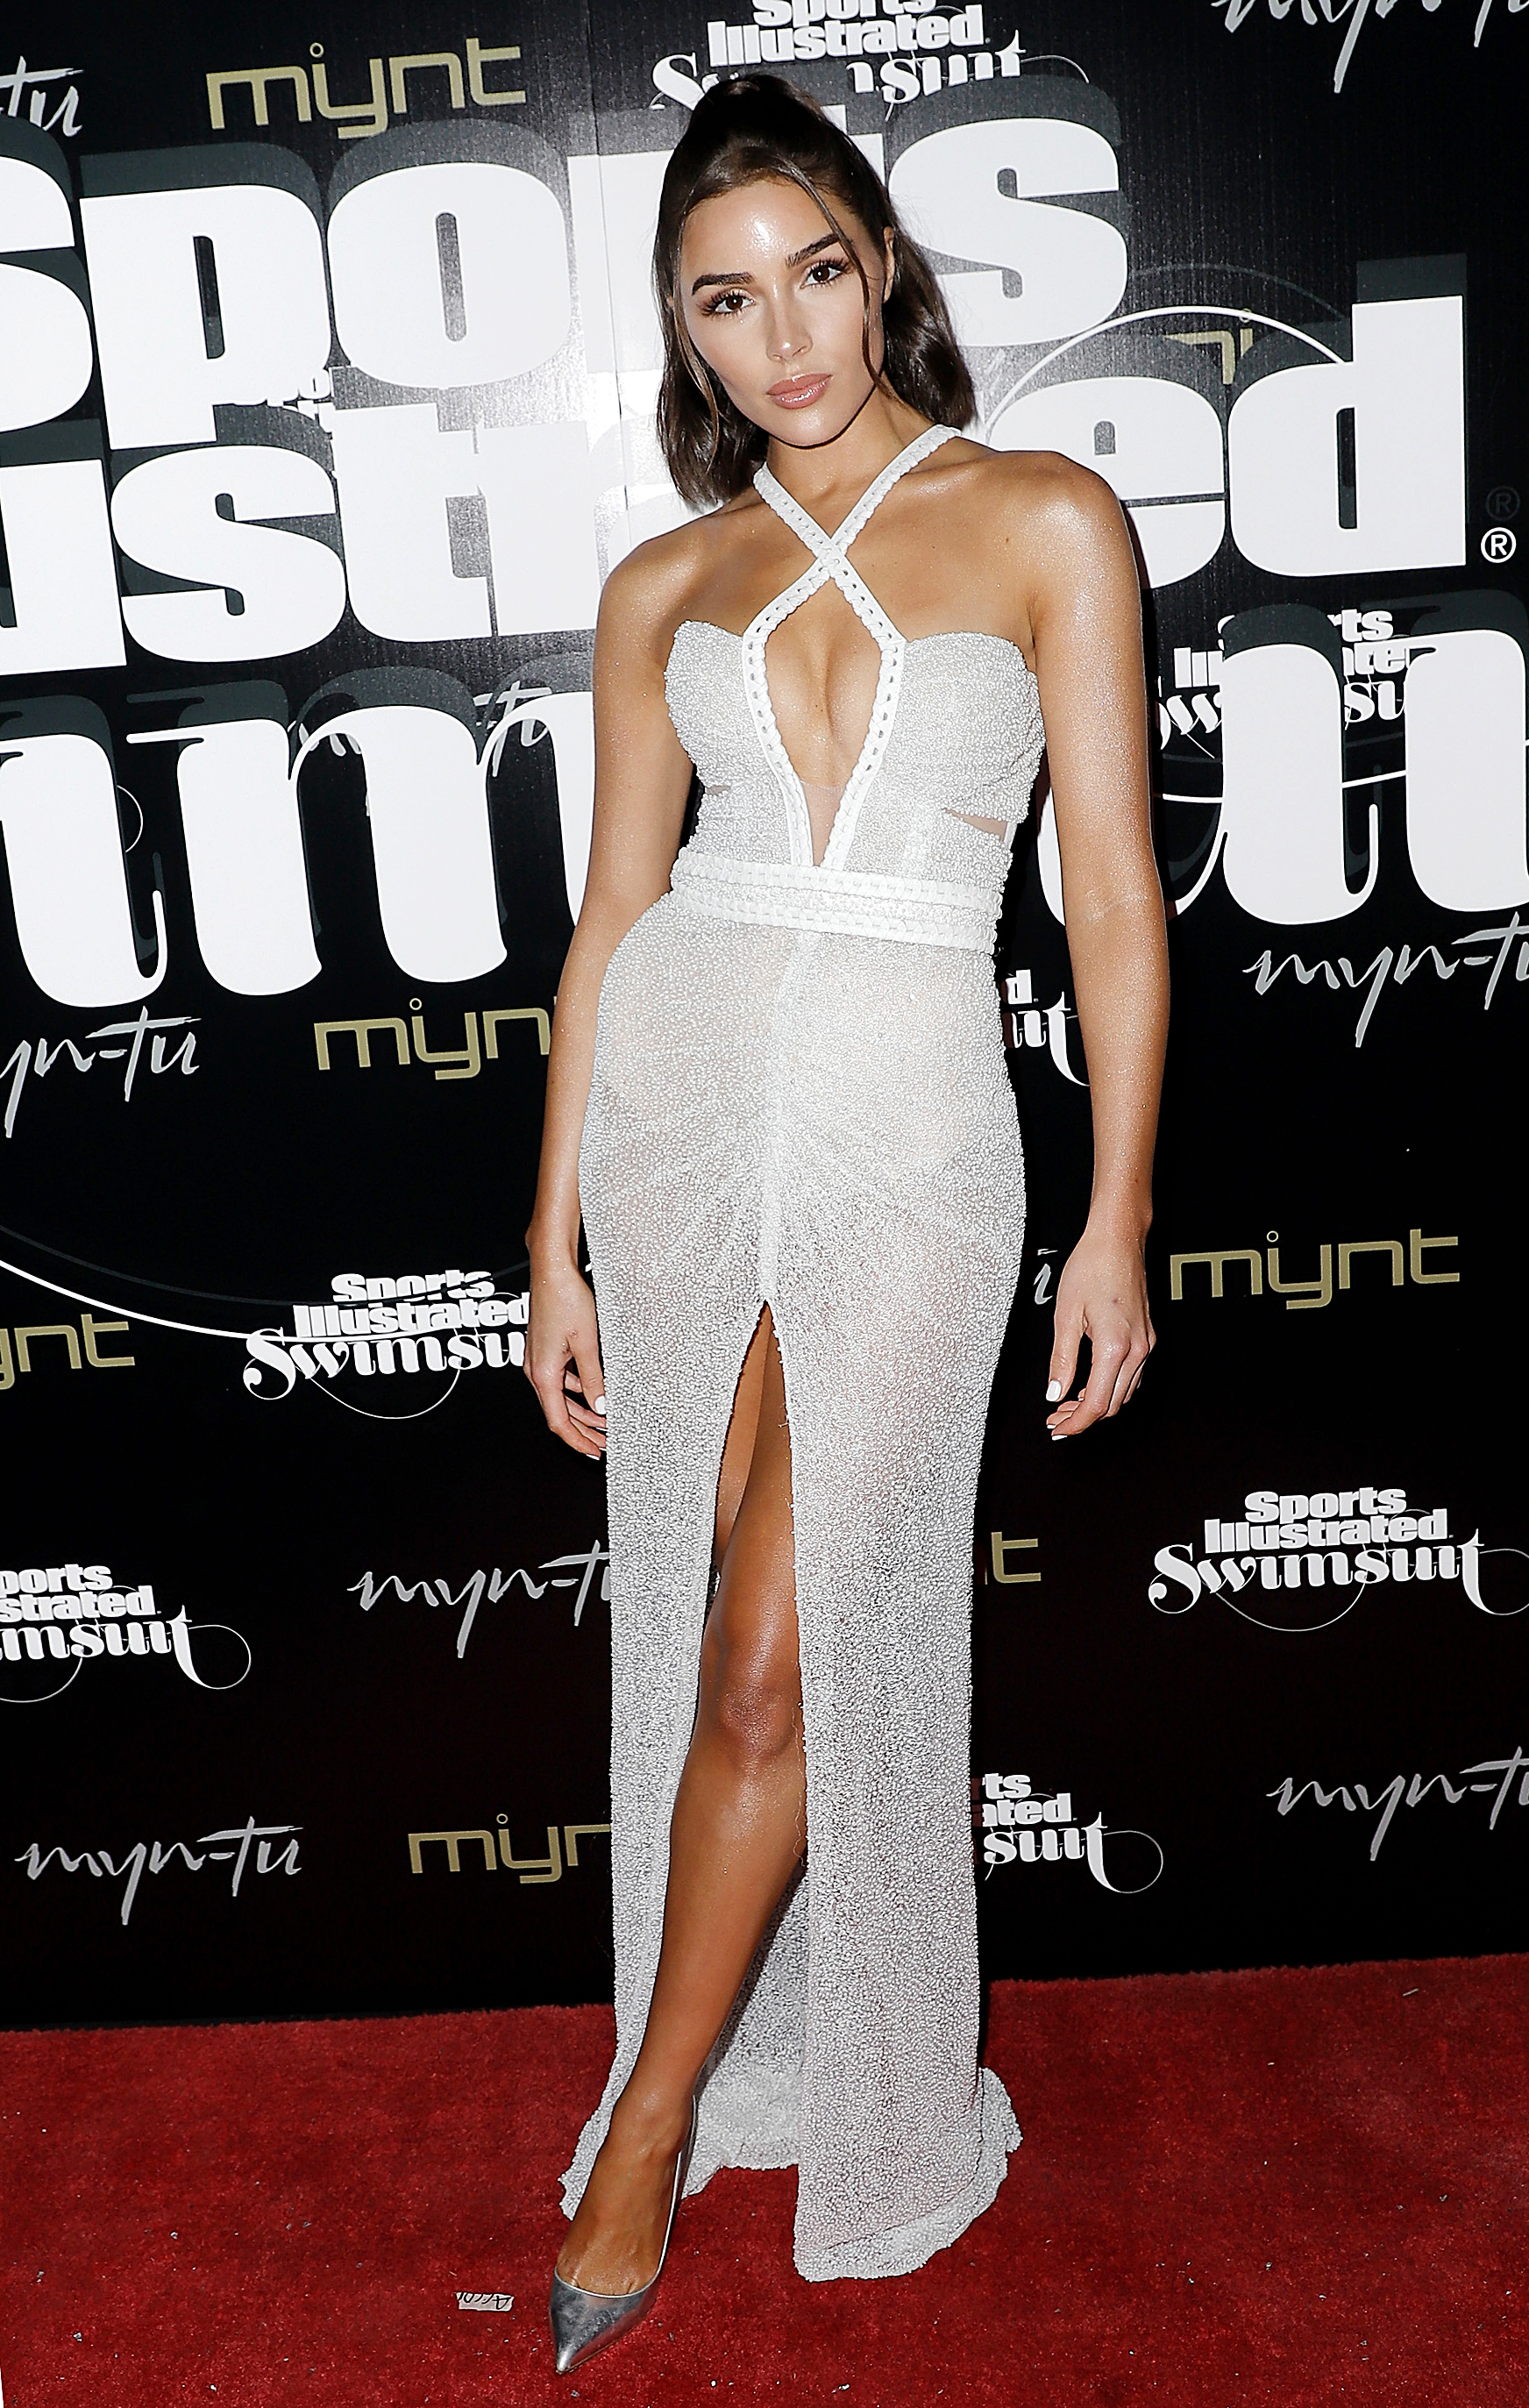 SI Swimsuit Models Reveal How They Prepped for Their Shoots - Olivia Culpo attends the Sports Illustrated Swimsuit Celebrates 2019 Issue Launch at Myn-Tu on May 11, 2019 in Miami, Florida.